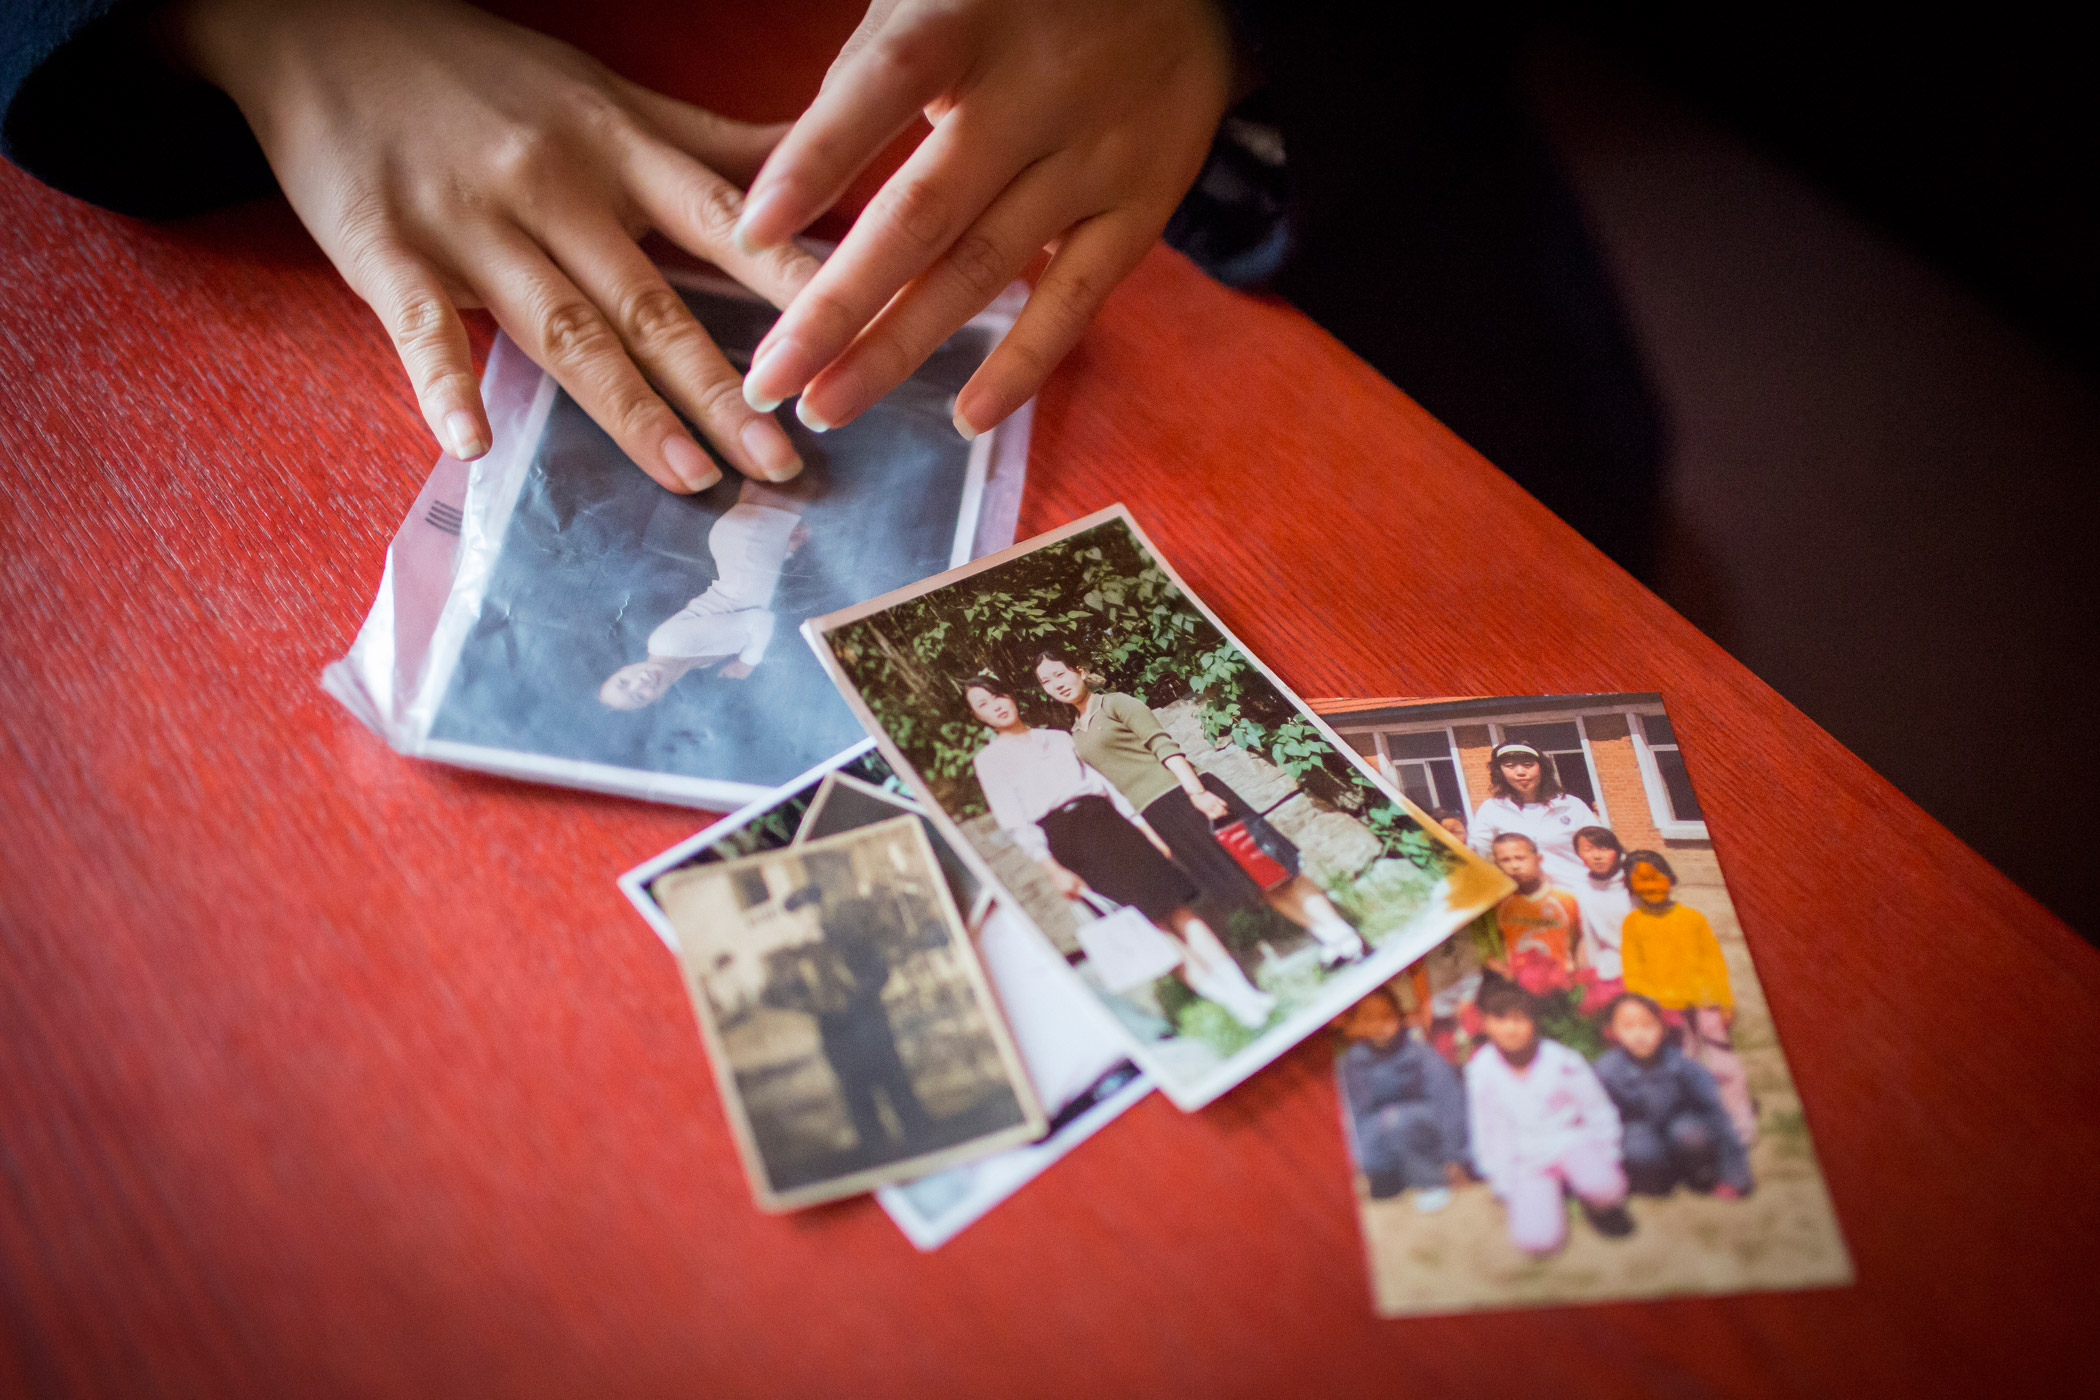 Kyoung-ok shows photographs on Feb. 1, 2015, that she brought with her on the 10-month journey from North Korea through China, Vietnam and Cambodia to South Korea. Other than a backpack full of food and a few clothes, these pictures were all that she and her mother brought with them when they left.